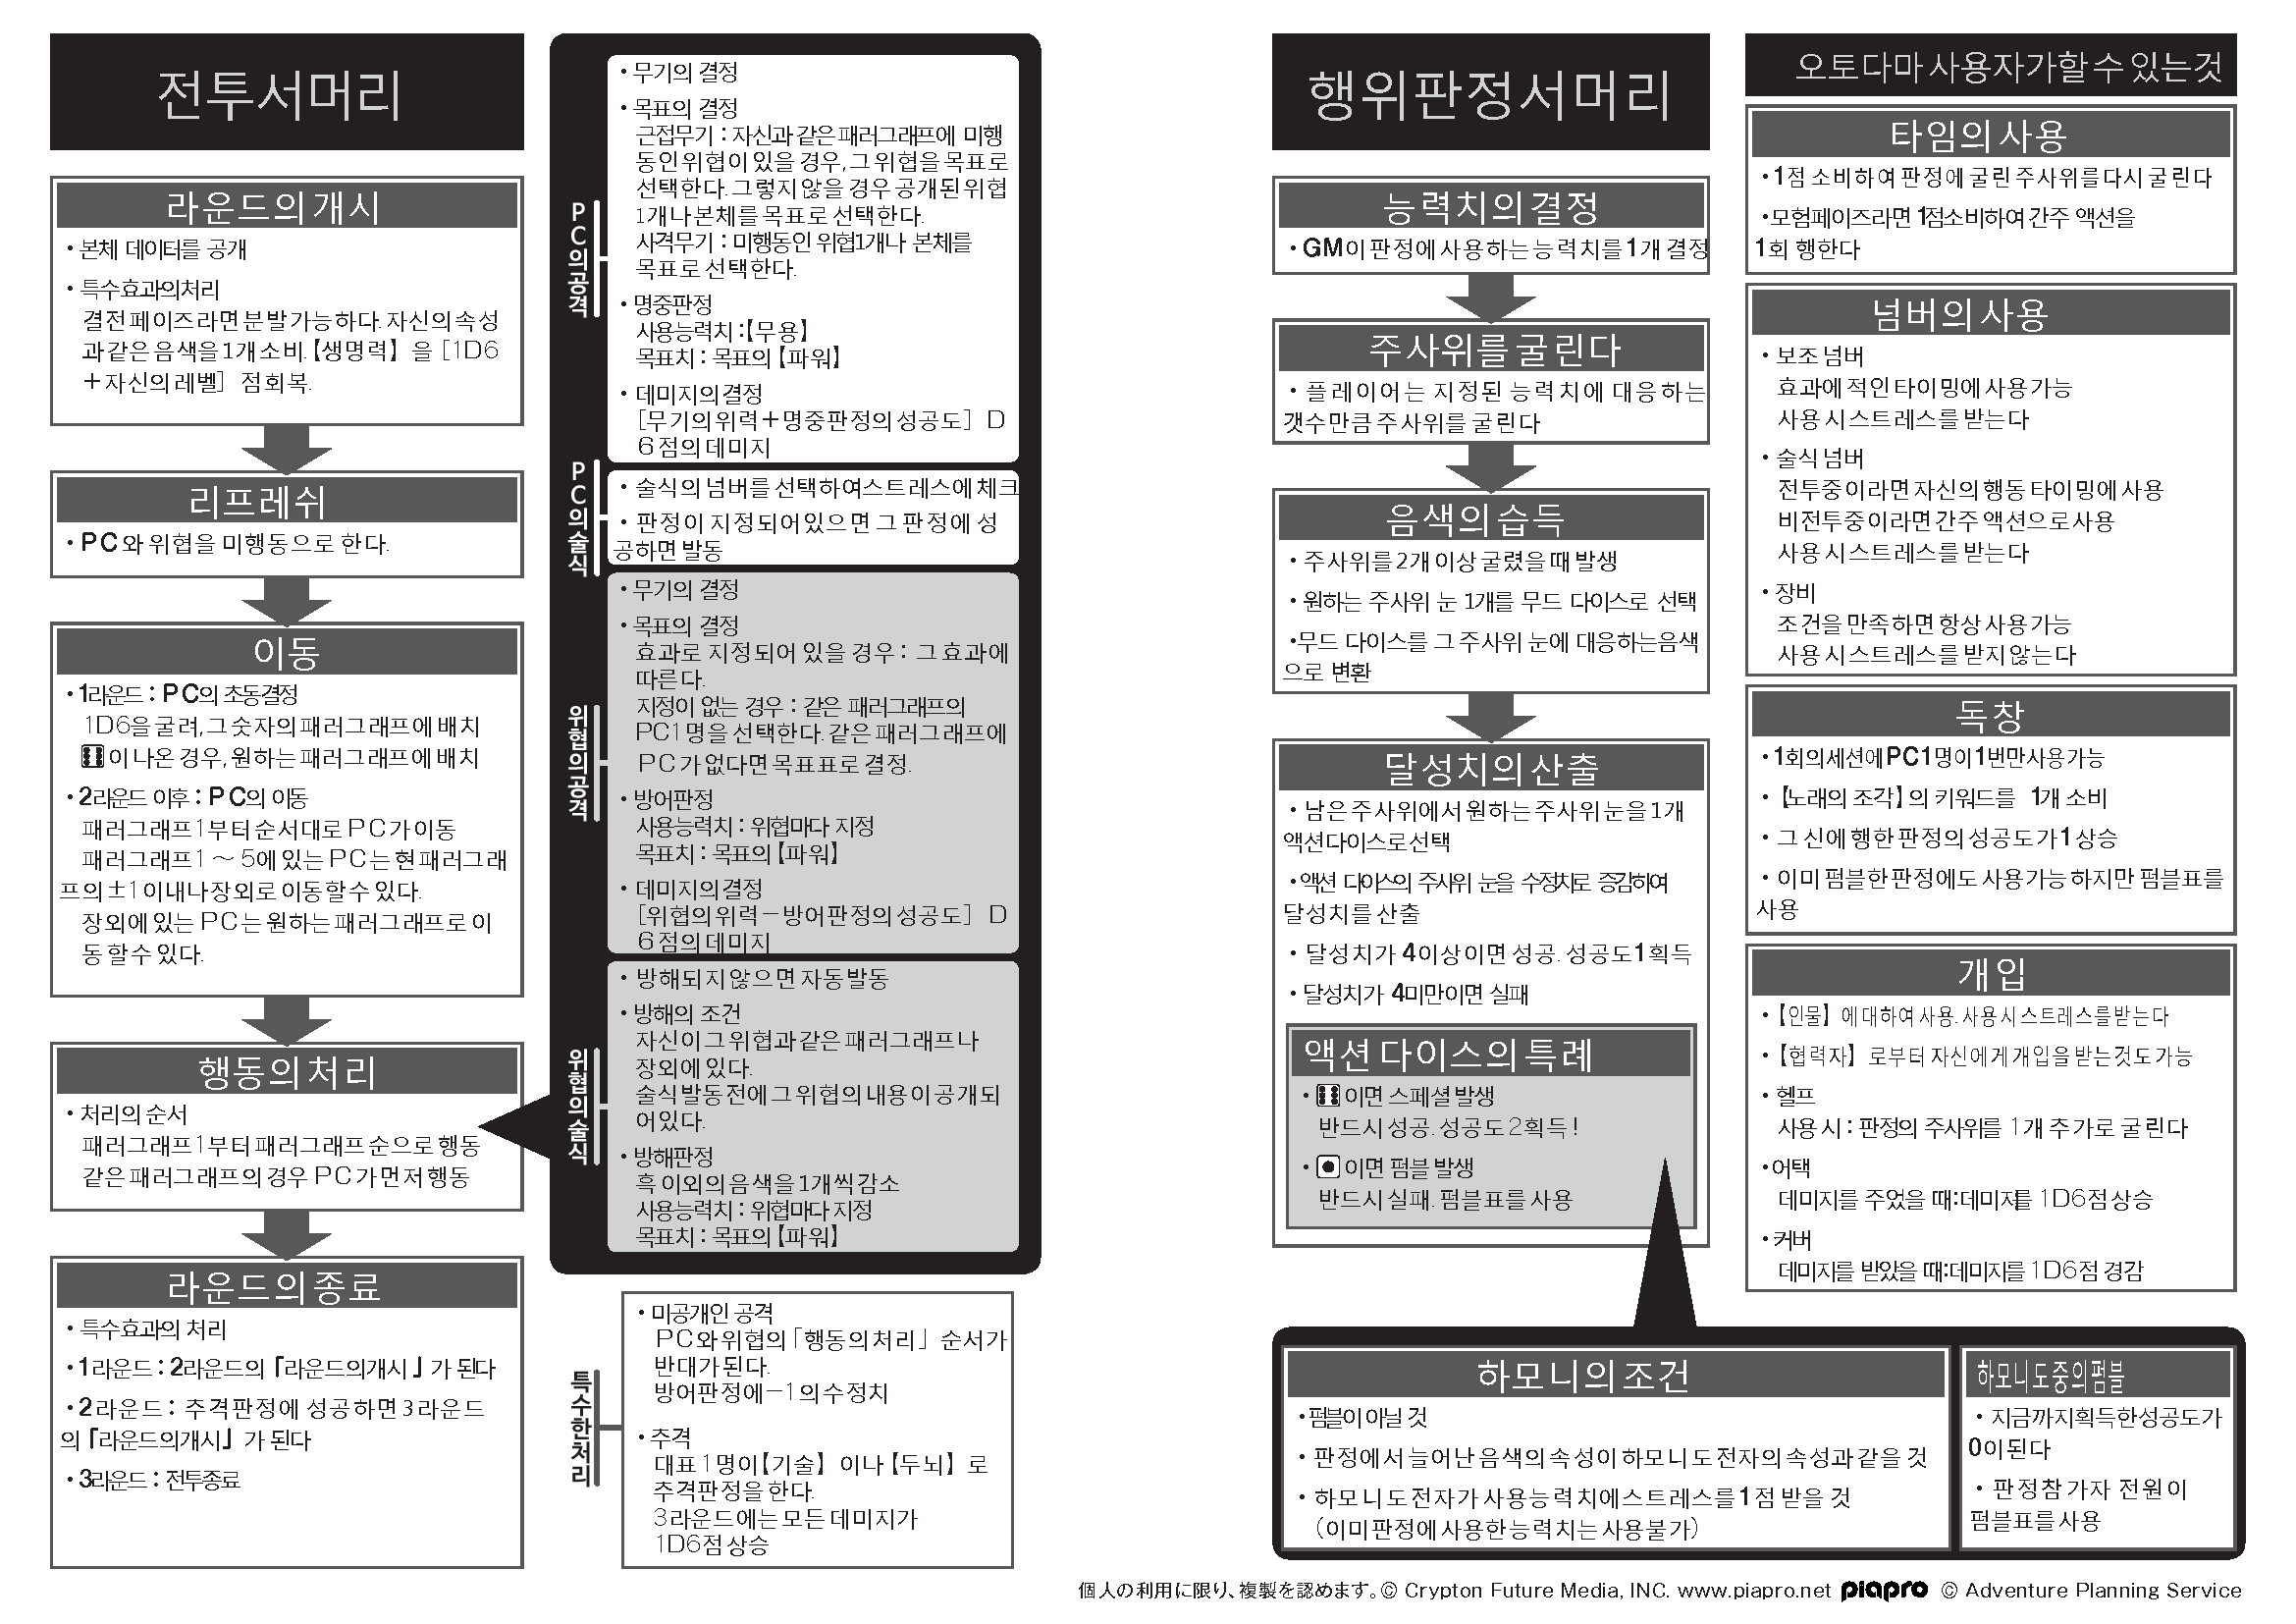 cd_summary_kor.png